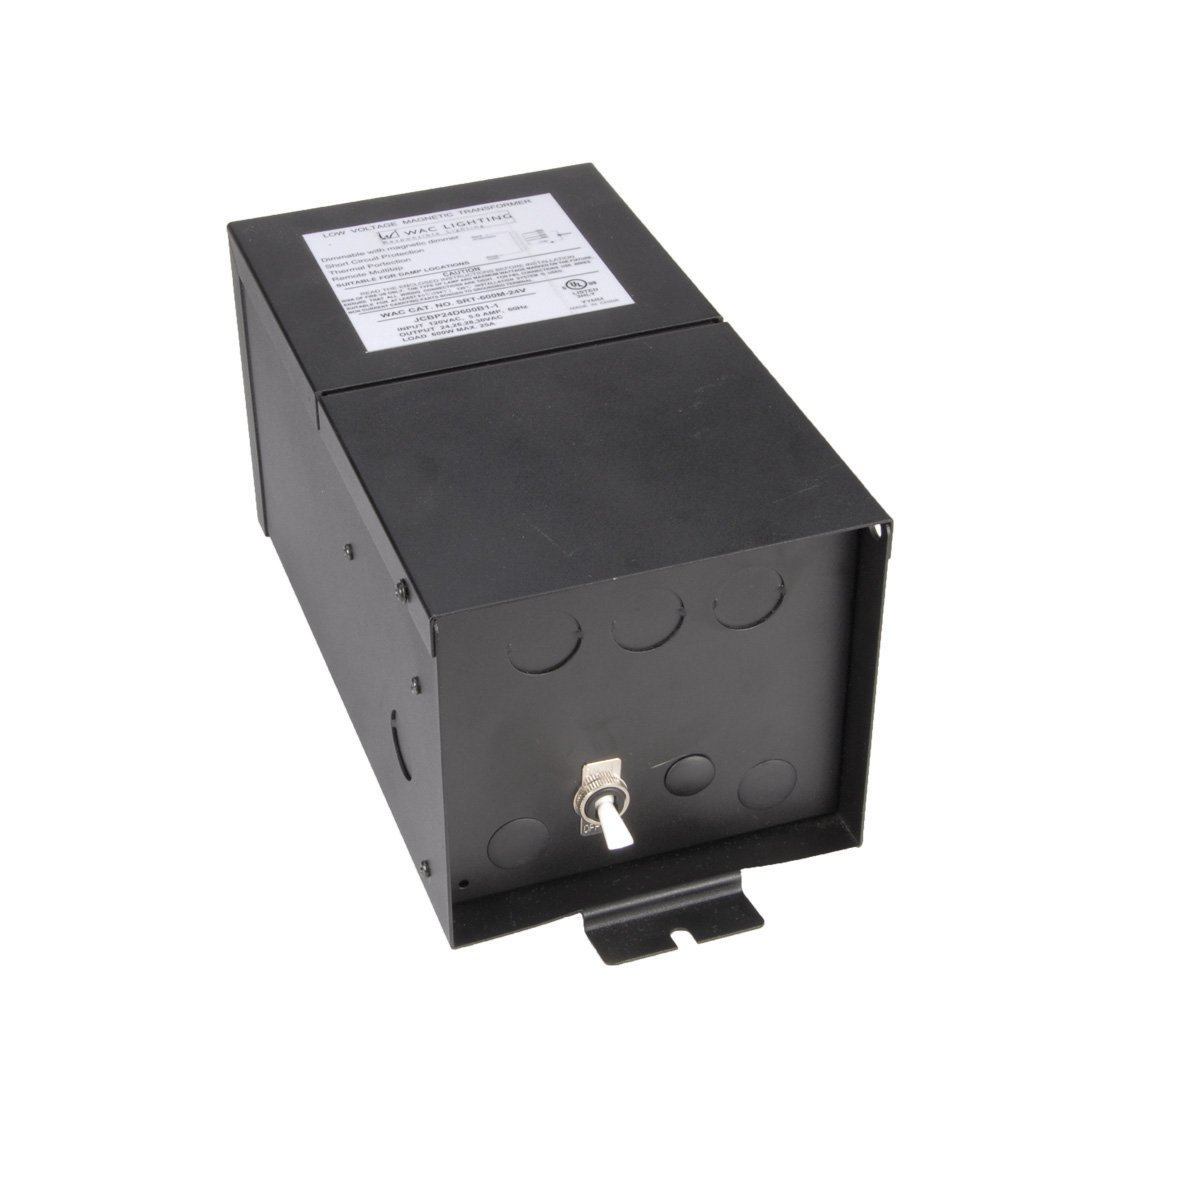 WAC Lighting SRT600M24V Remote Magnetic Transformer 600W, 600W Output 24V with Boost Tap by WAC Lighting